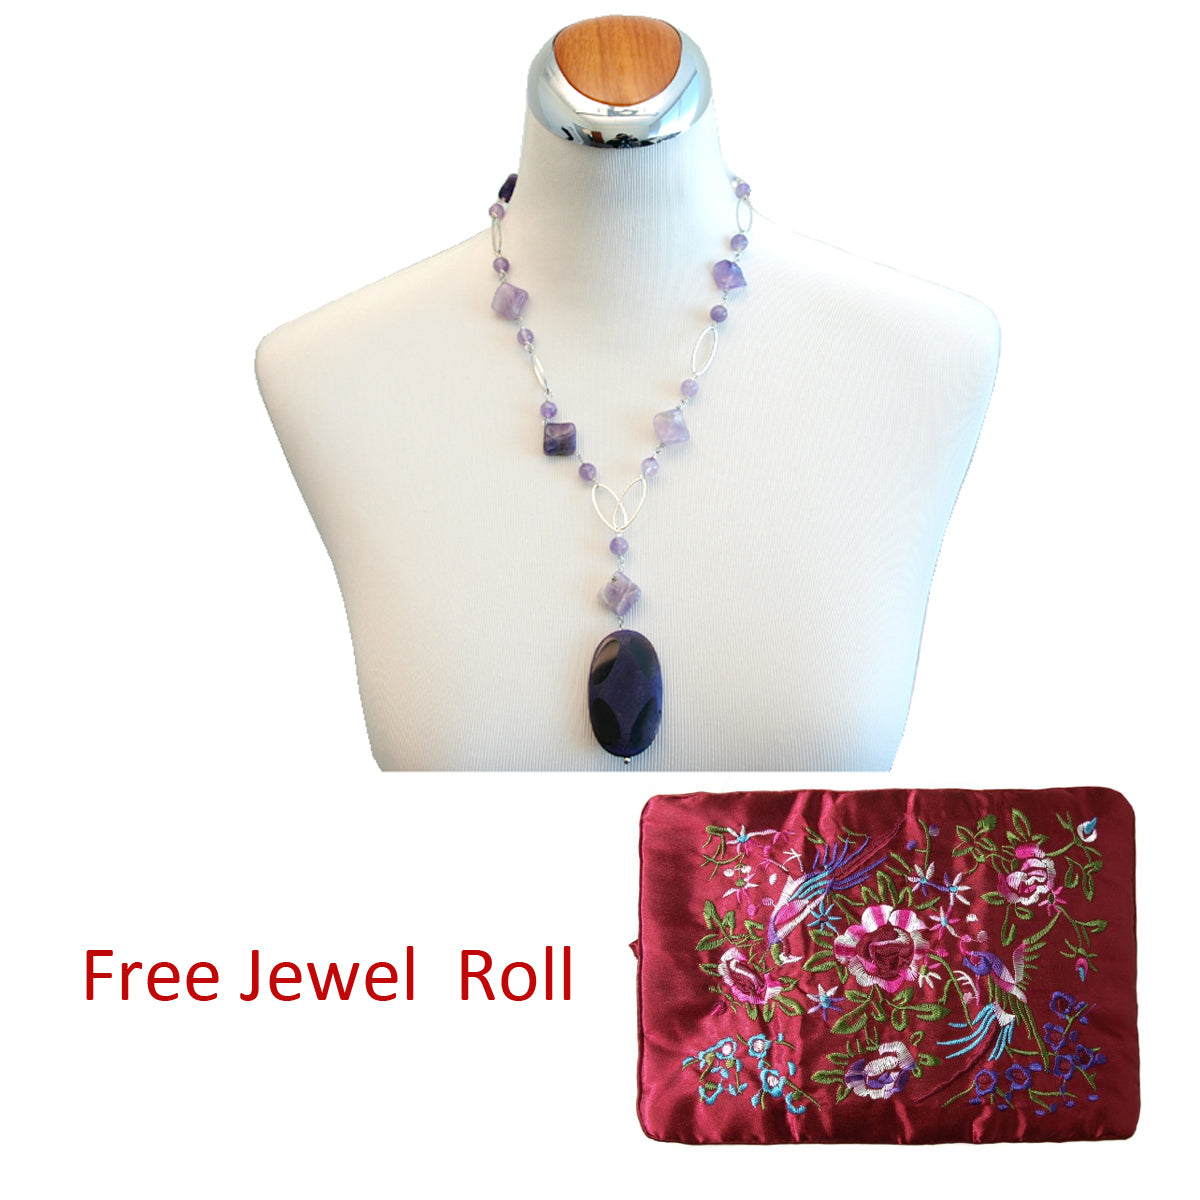 Royal Purple Drop Pendant Necklace, 23.6 inches + Large Burgundy Silk Embroidered Jewelry Roll